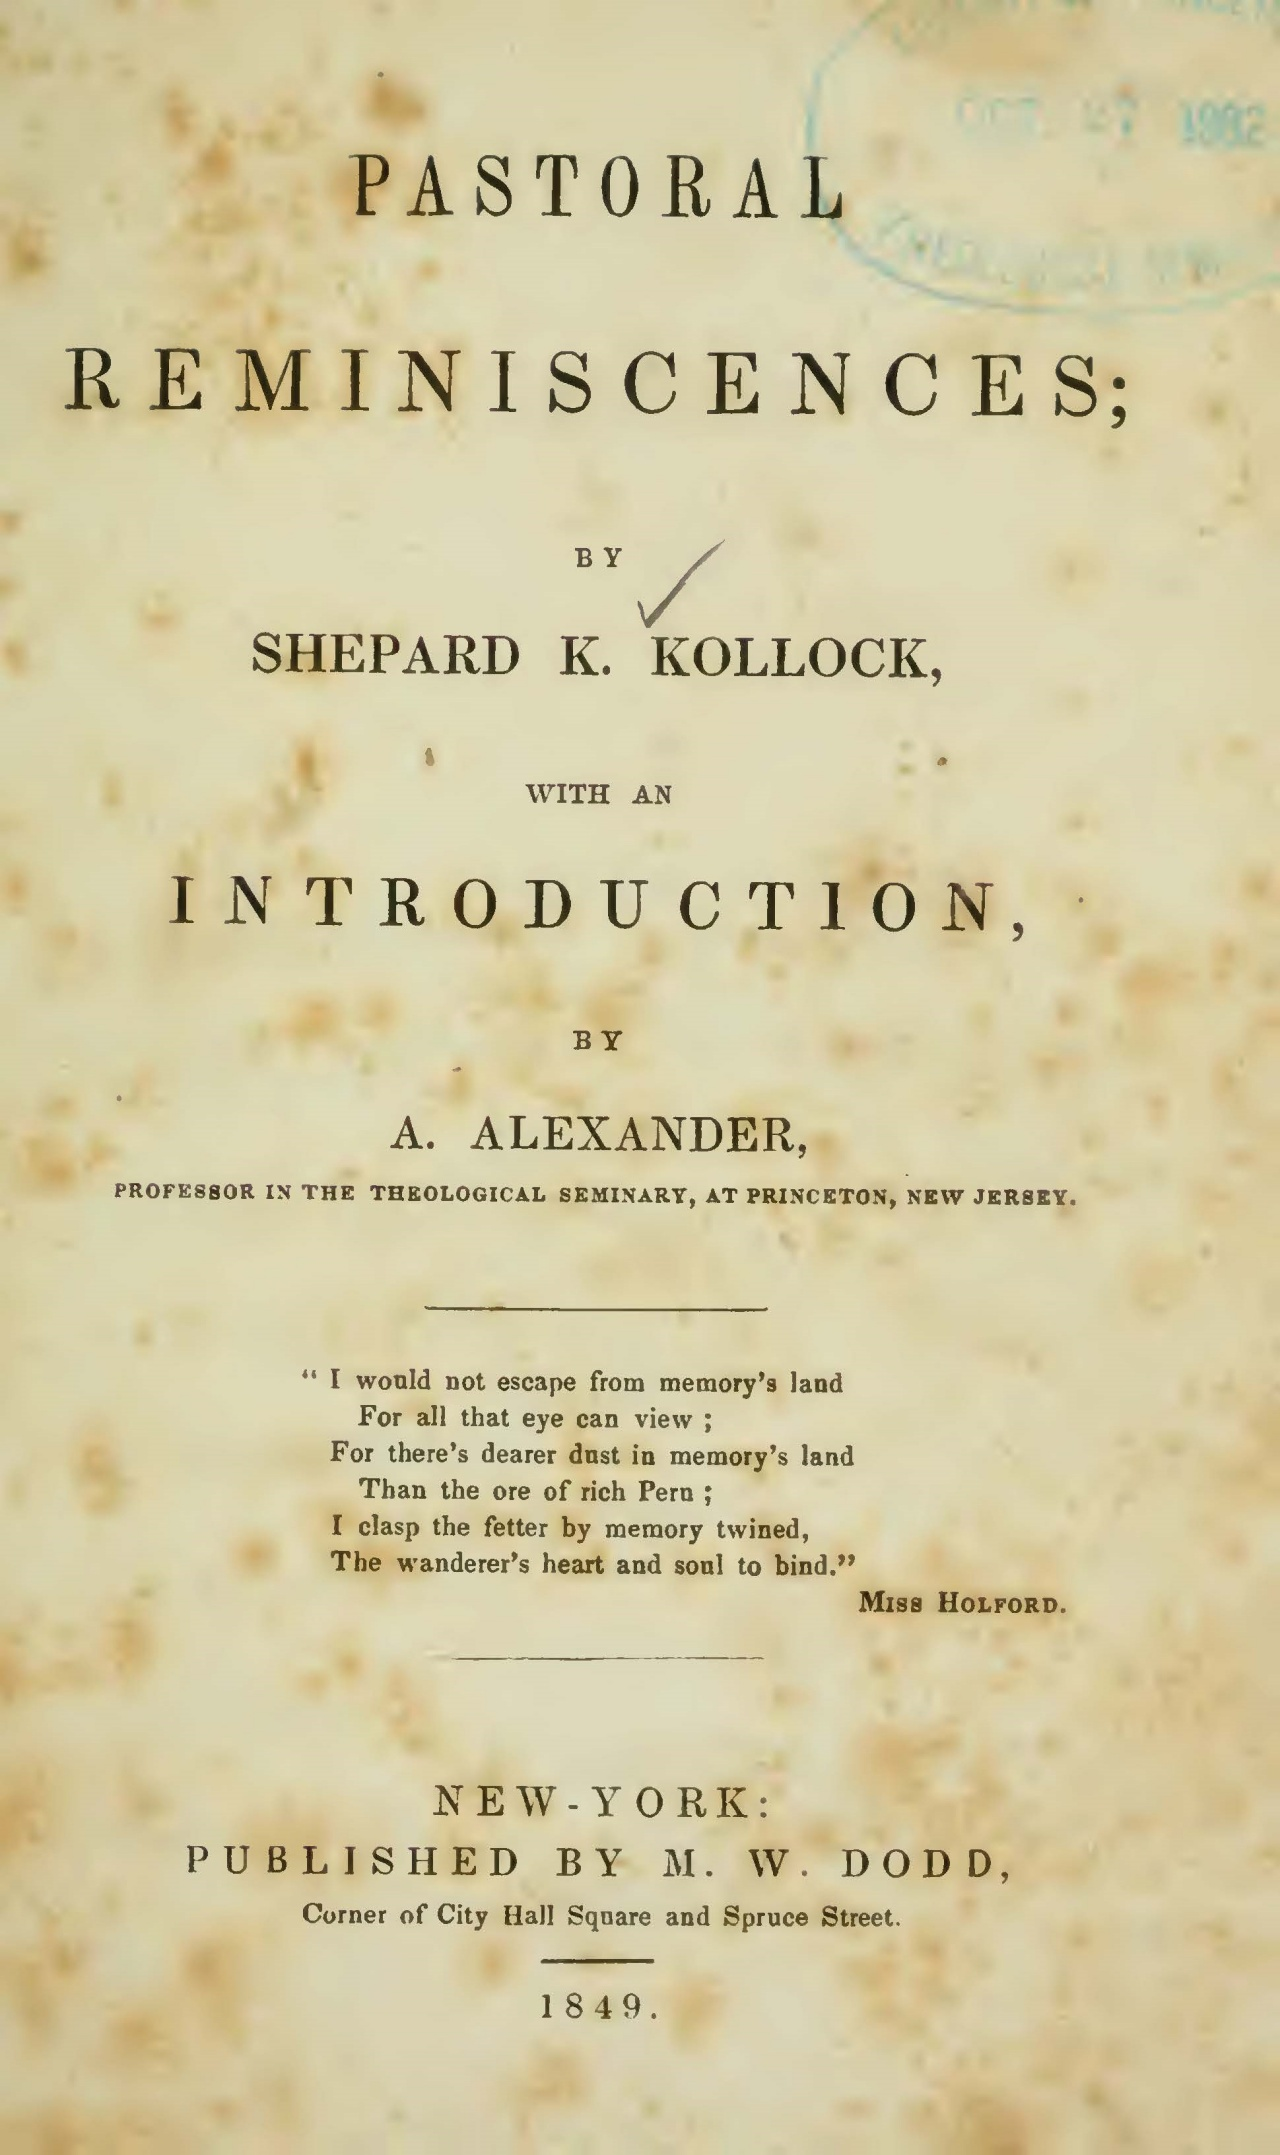 Alexander, Archibald, Introduction to Shepard Kollock's Pastoral Reminiscences Title Page.jpg